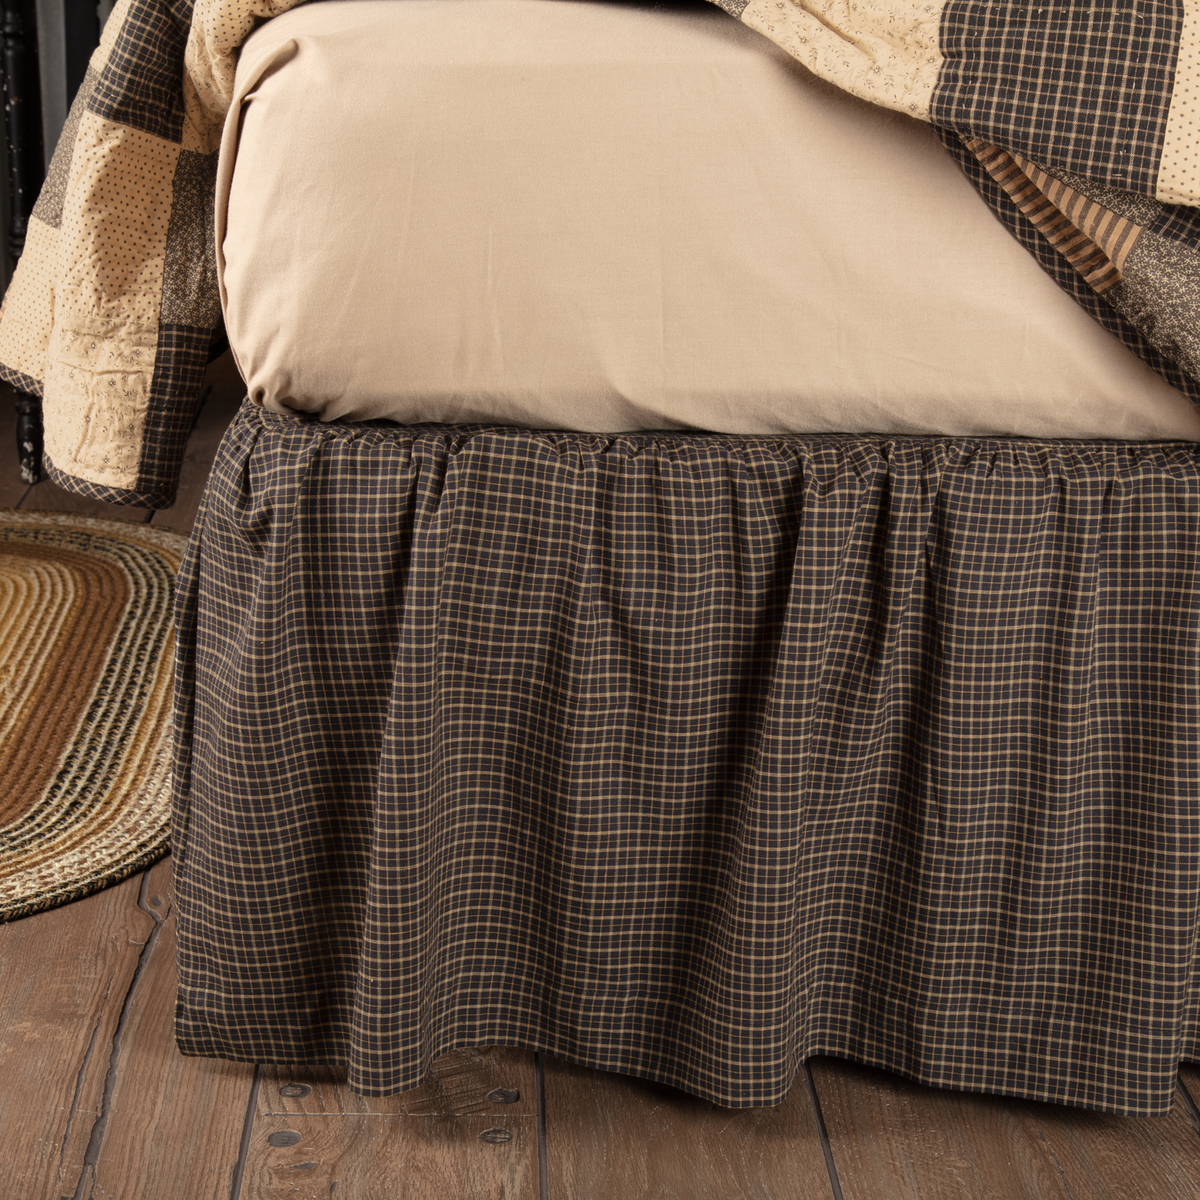 Kettle Grove Queen Bed Skirt 60x80x16 Allysons Place